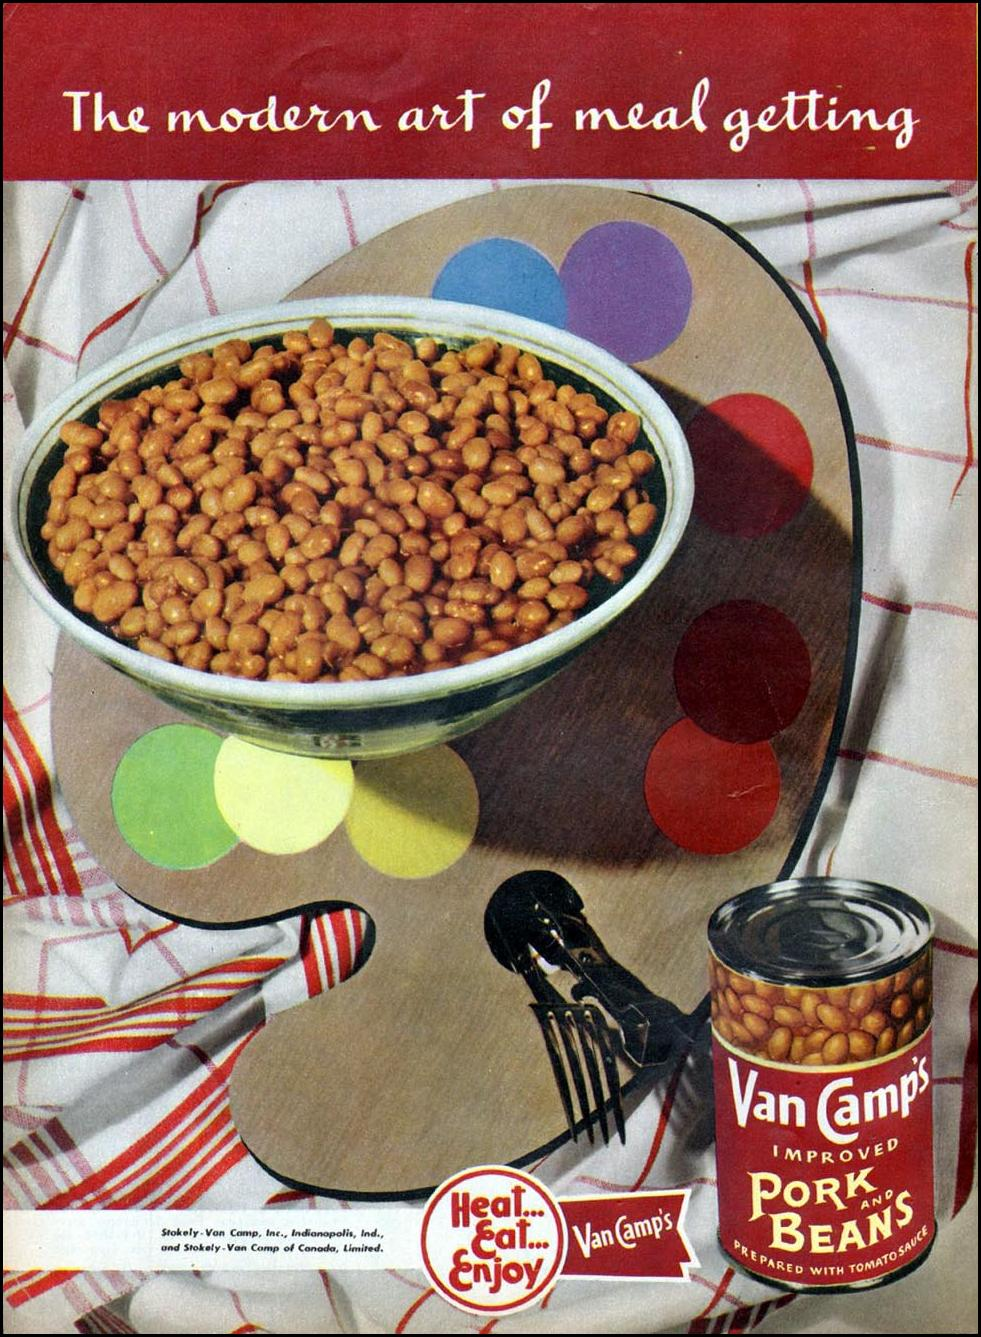 VAN CAMP'S PORK AND BEANS WOMAN'S DAY 06/01/1947